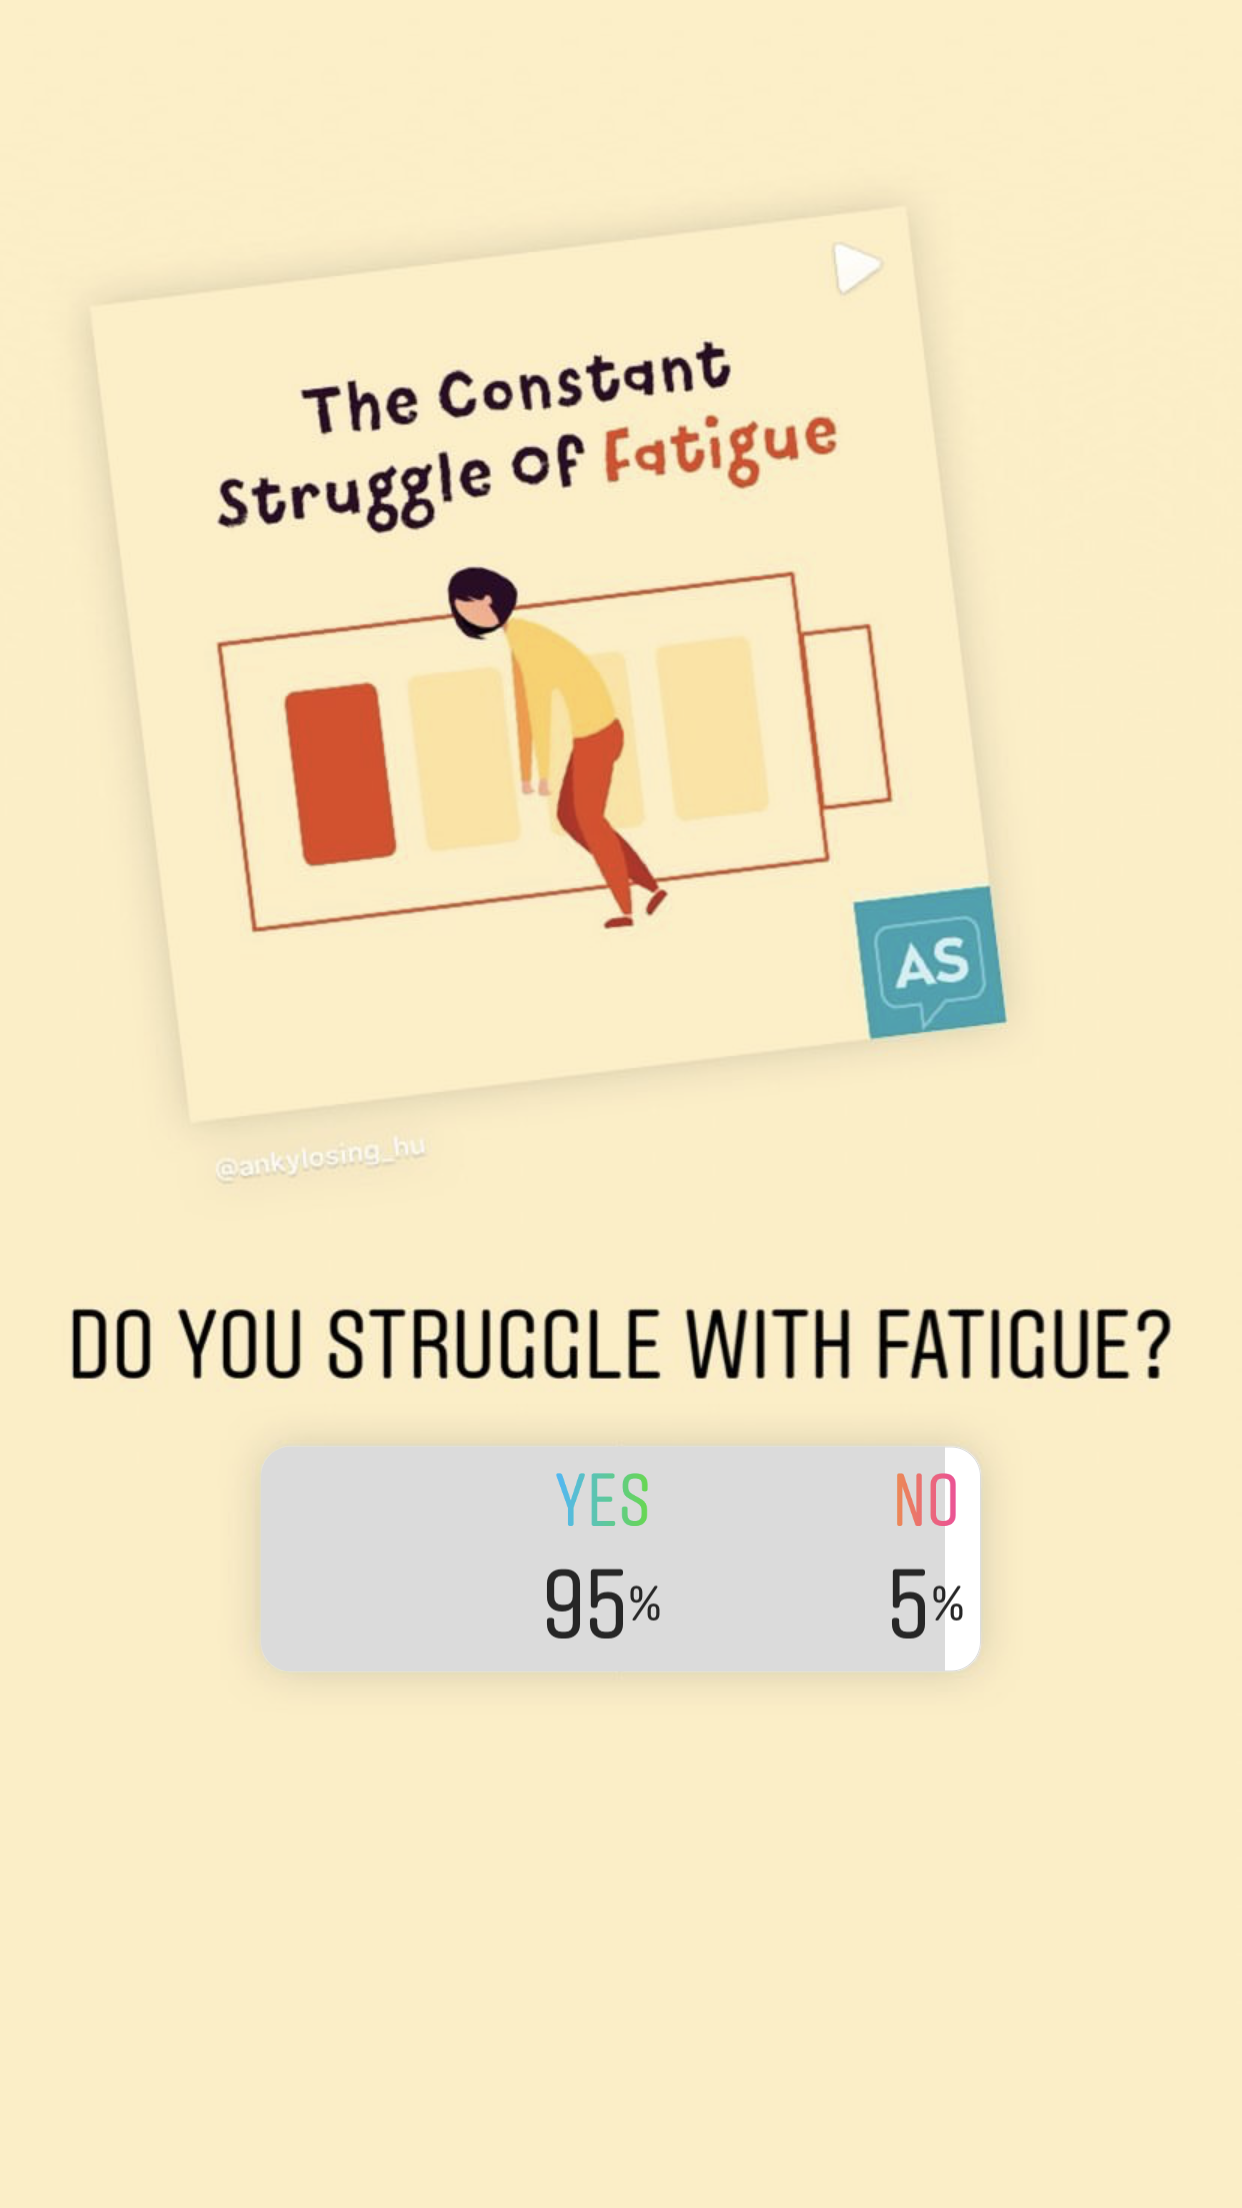 95 percent of people with ankylosing spondylitis struggle with fatigue